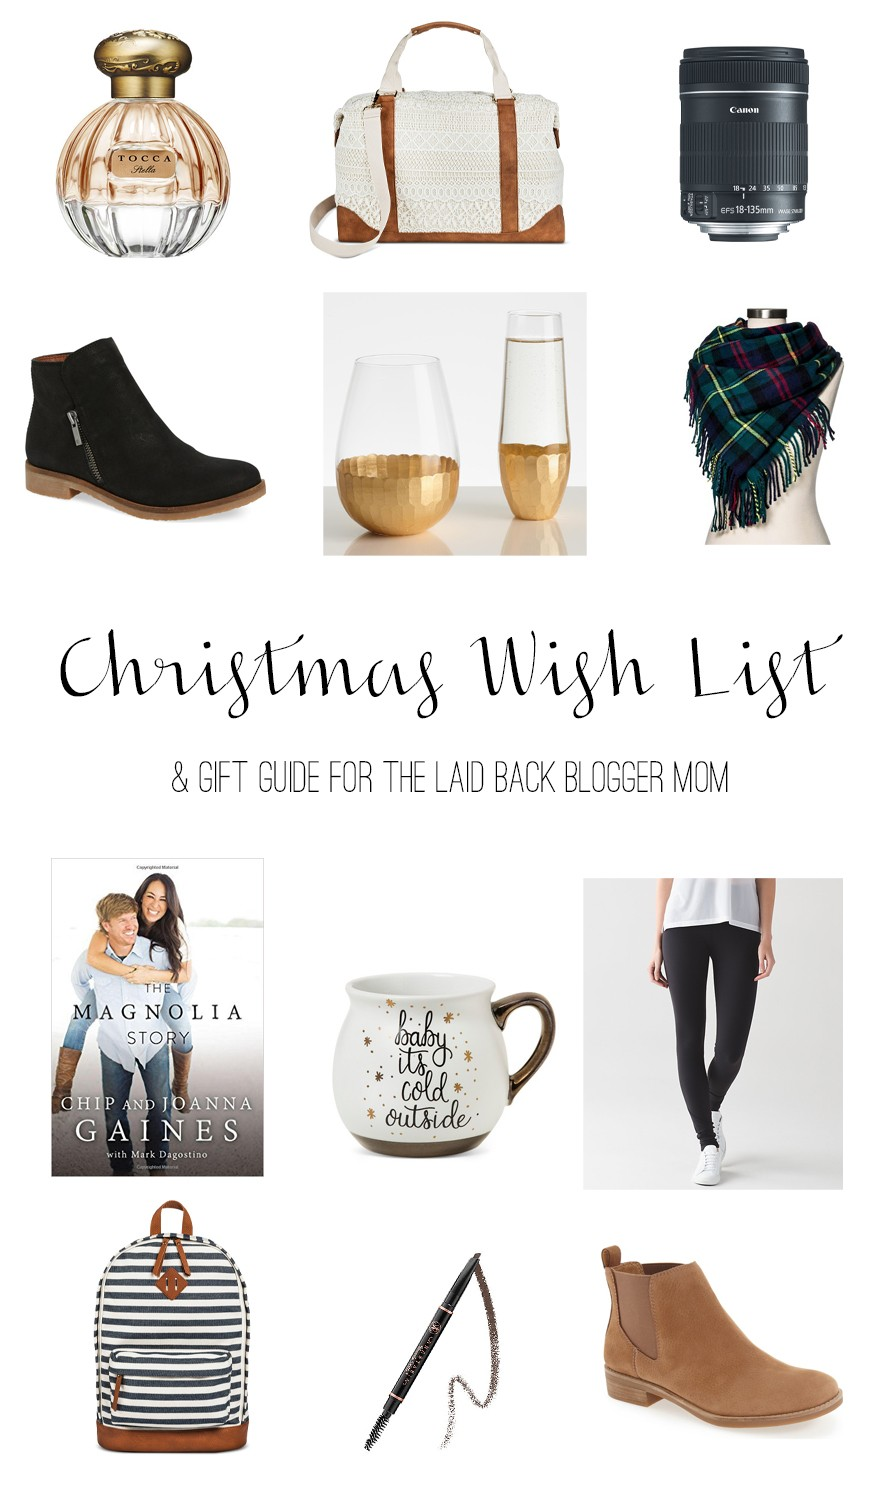 Christmas Wish List & Gift Guide for the Laid Back Blogger Mom ...